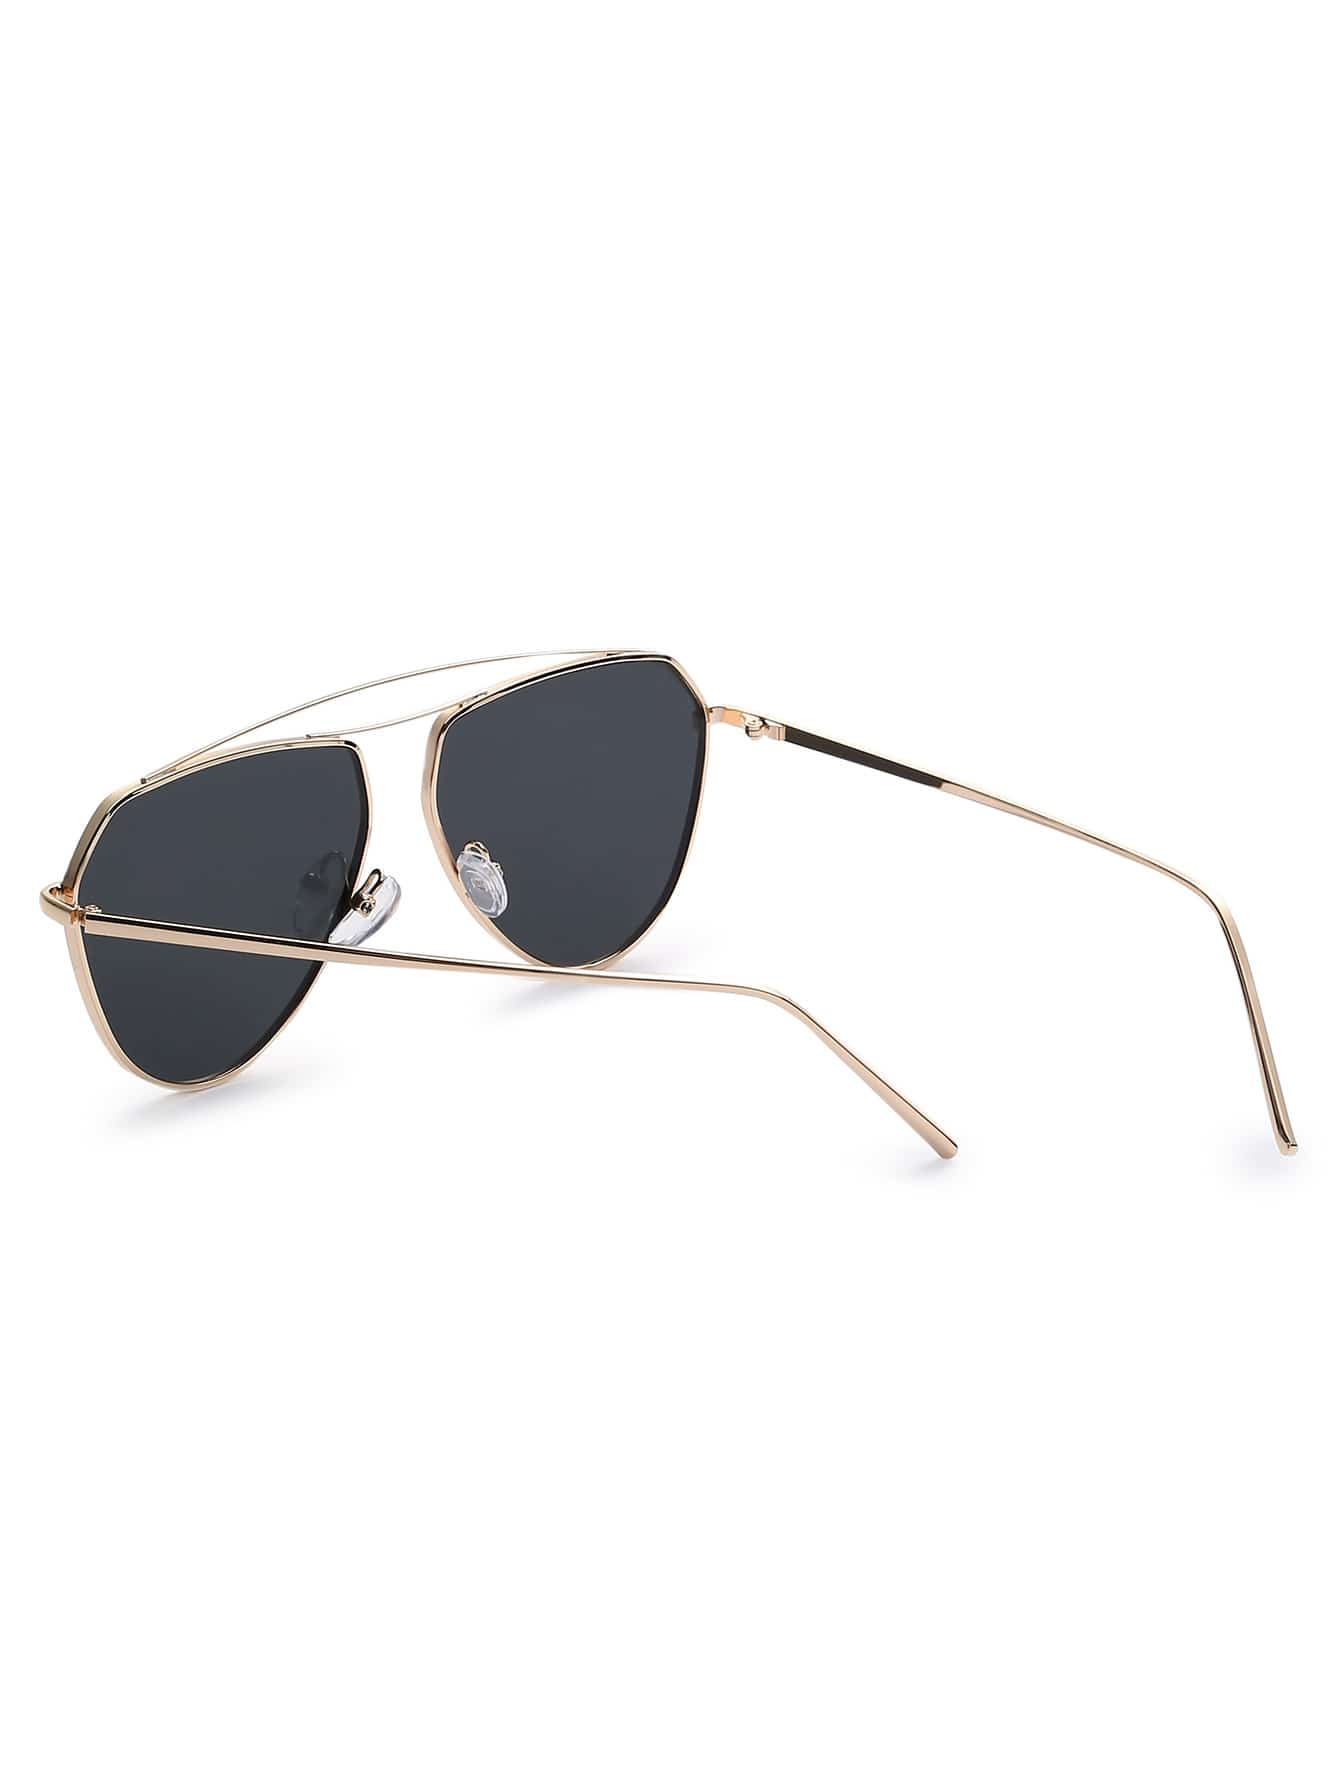 Gold Metal Frame Black Lens Aviator Sunglasses